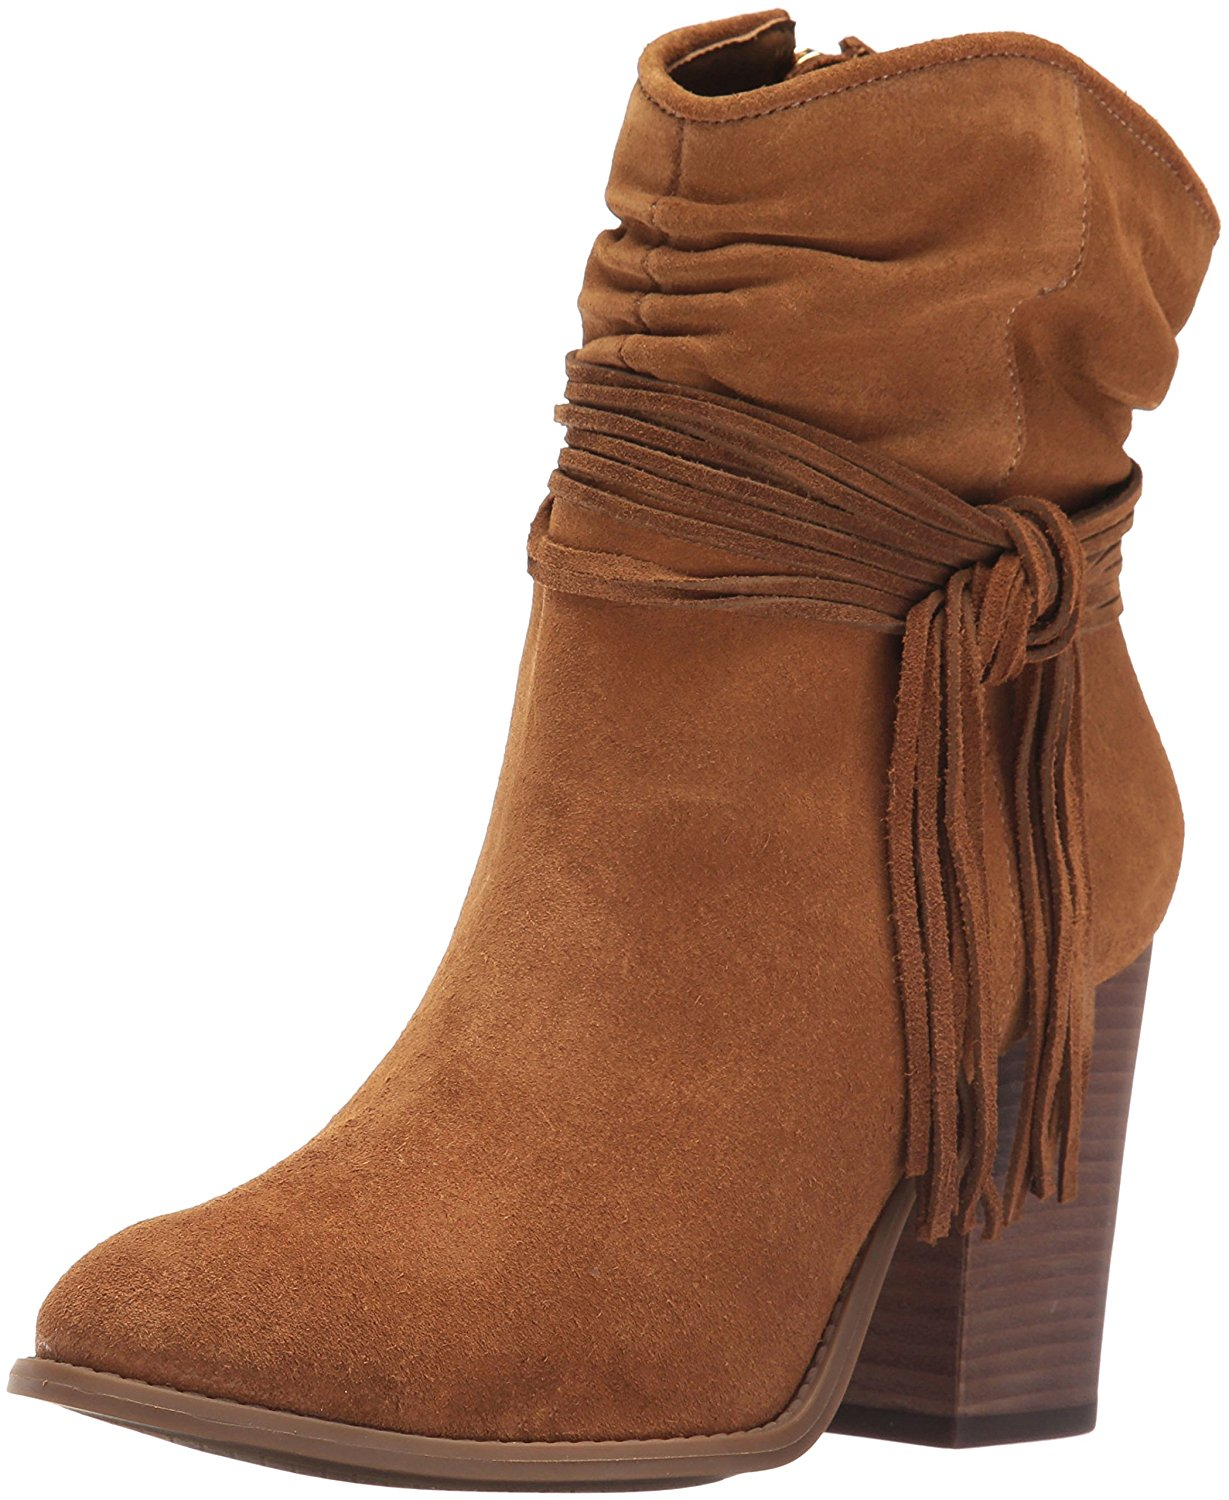 Jessica Simpson Womens Sesley Ankle Bootie Canela Brown Size 75